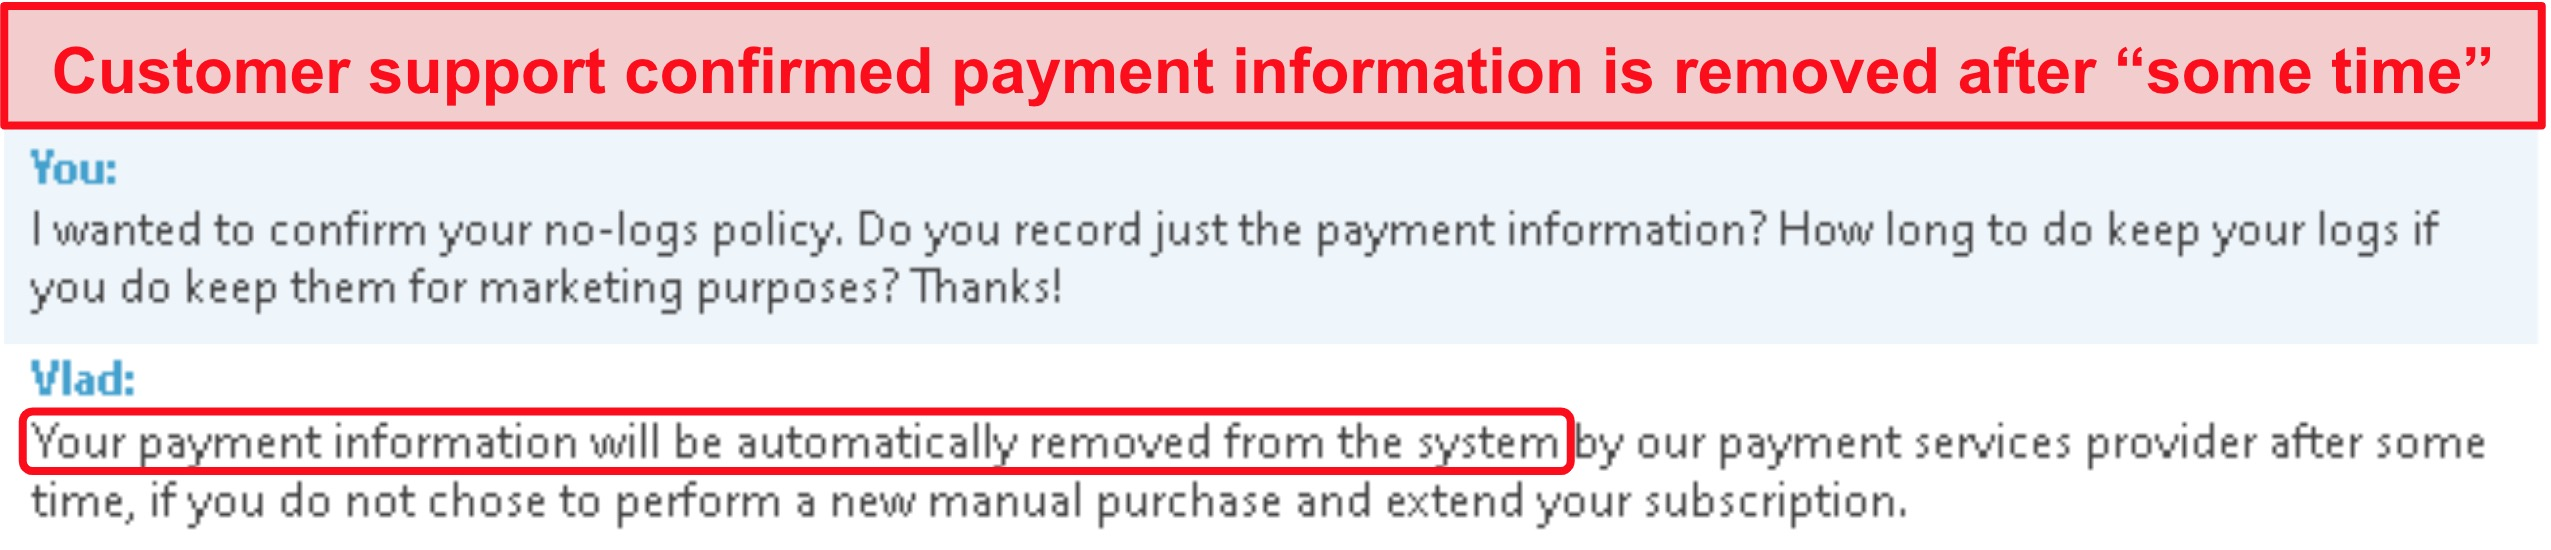 Screenshot of customer support chat clarifying they store payment information and remove it after